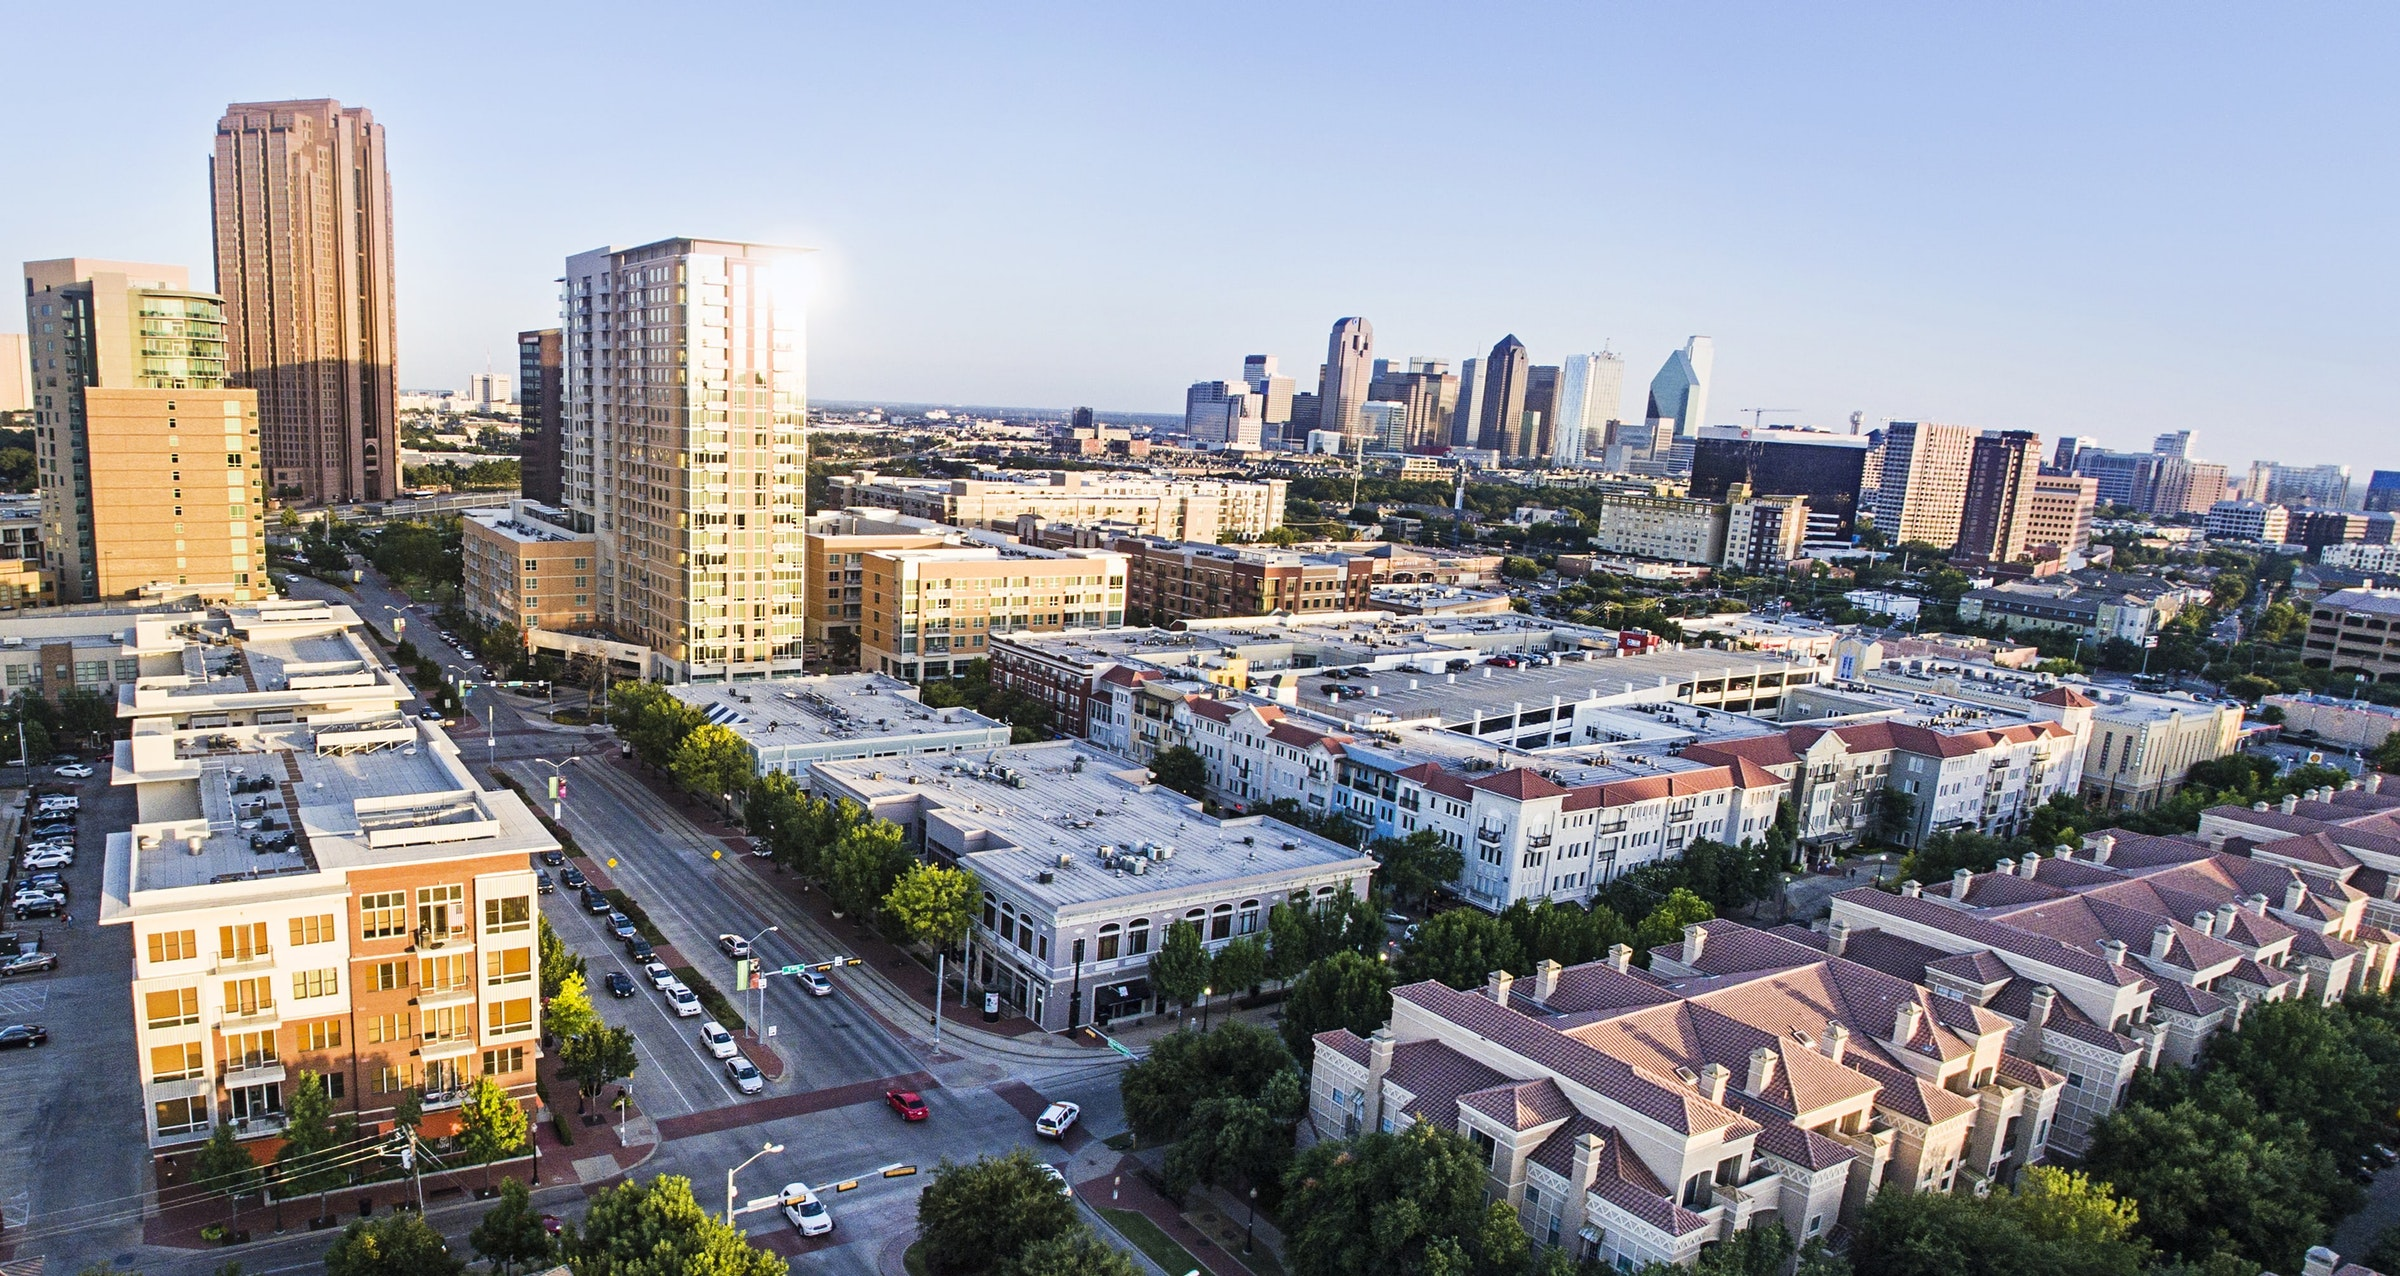 West Village in Beyond Dallas